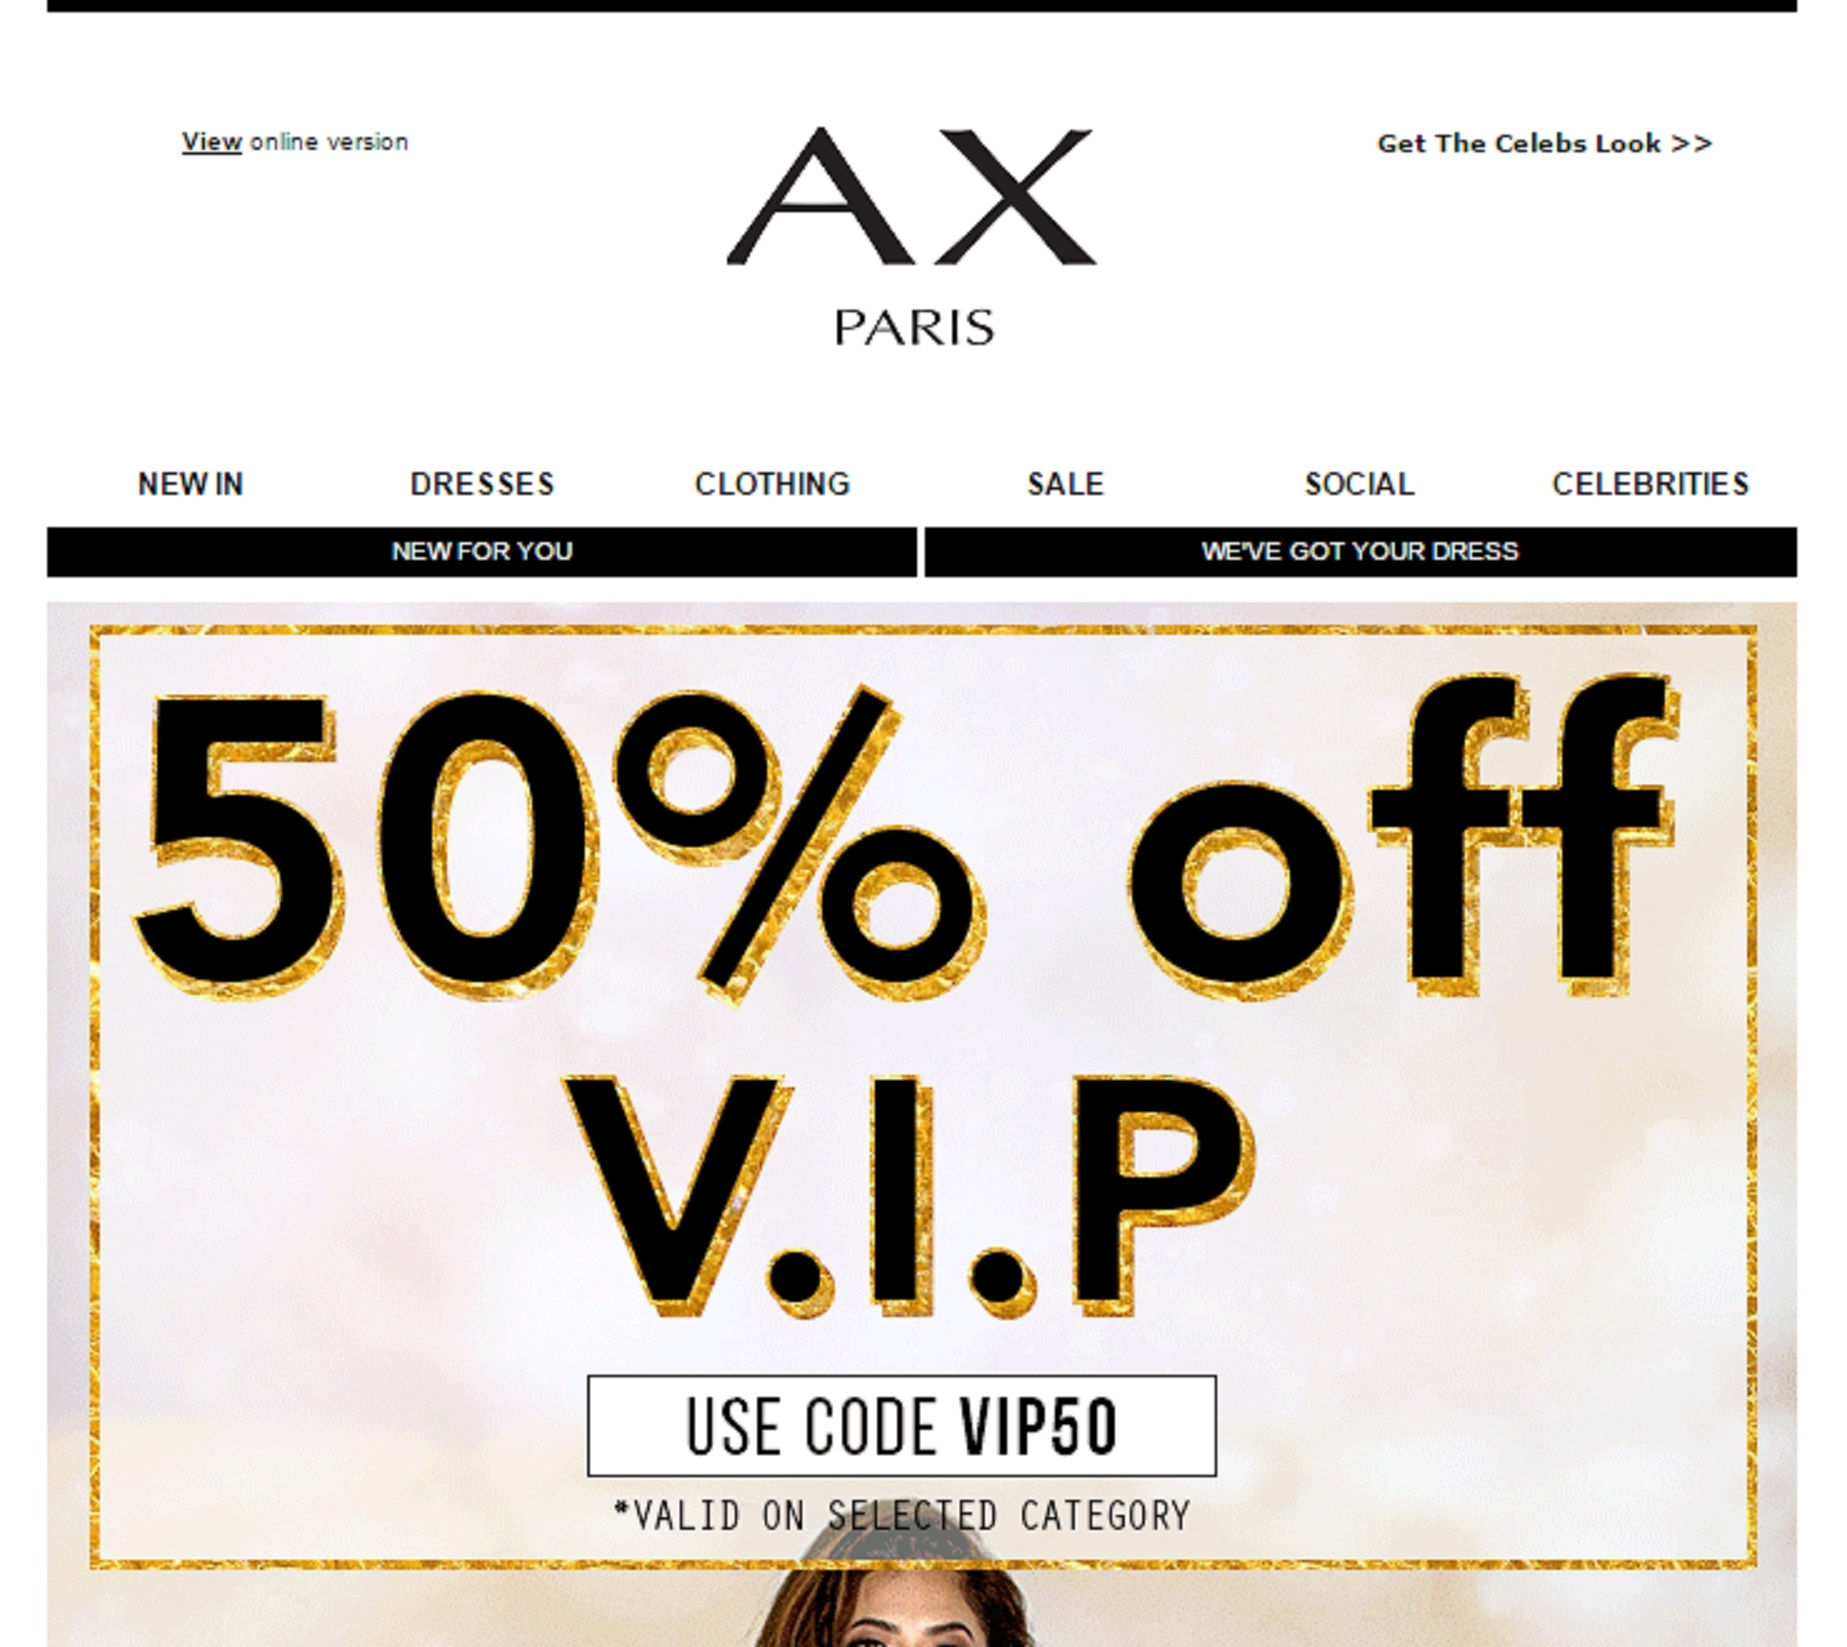 image relating to Golfsmith Printable Coupons referred to as Ax paris coupon code 2018 - Adobe acrobat x coupon